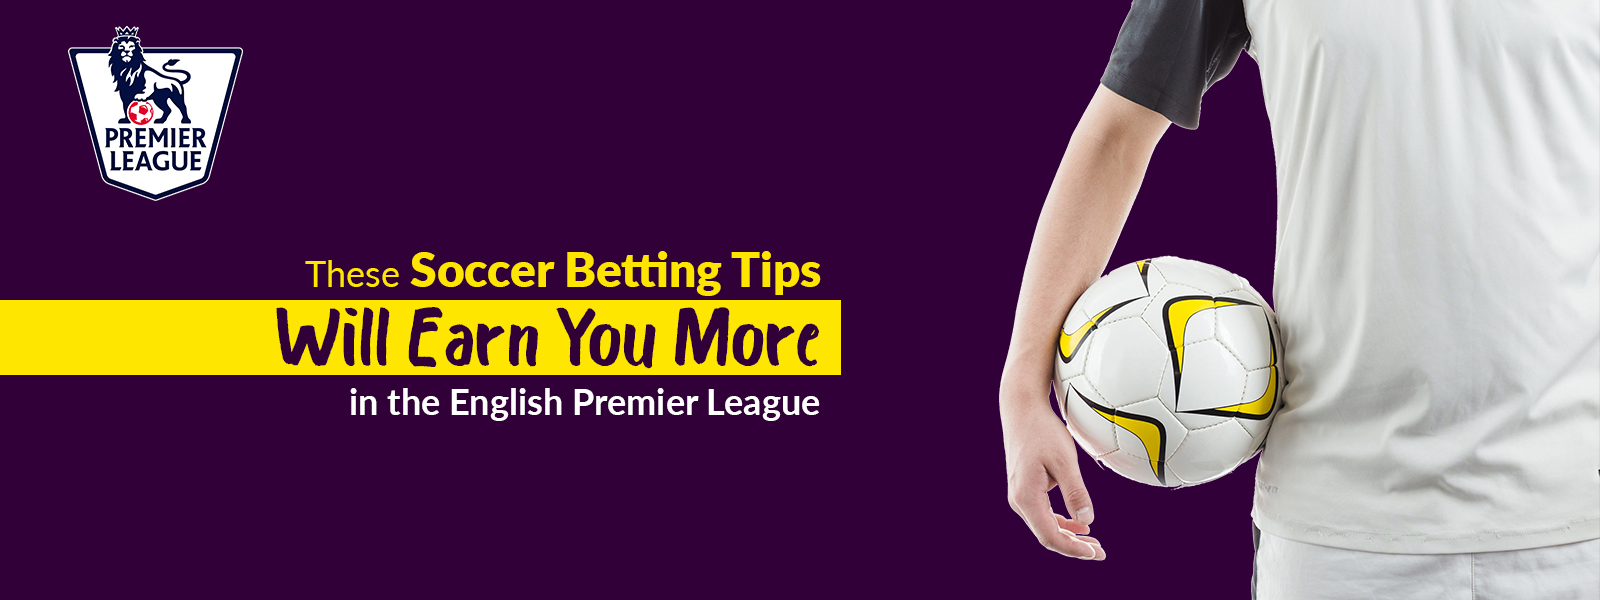 These Soccer Betting Tips Will Earn You More in the English Premier League